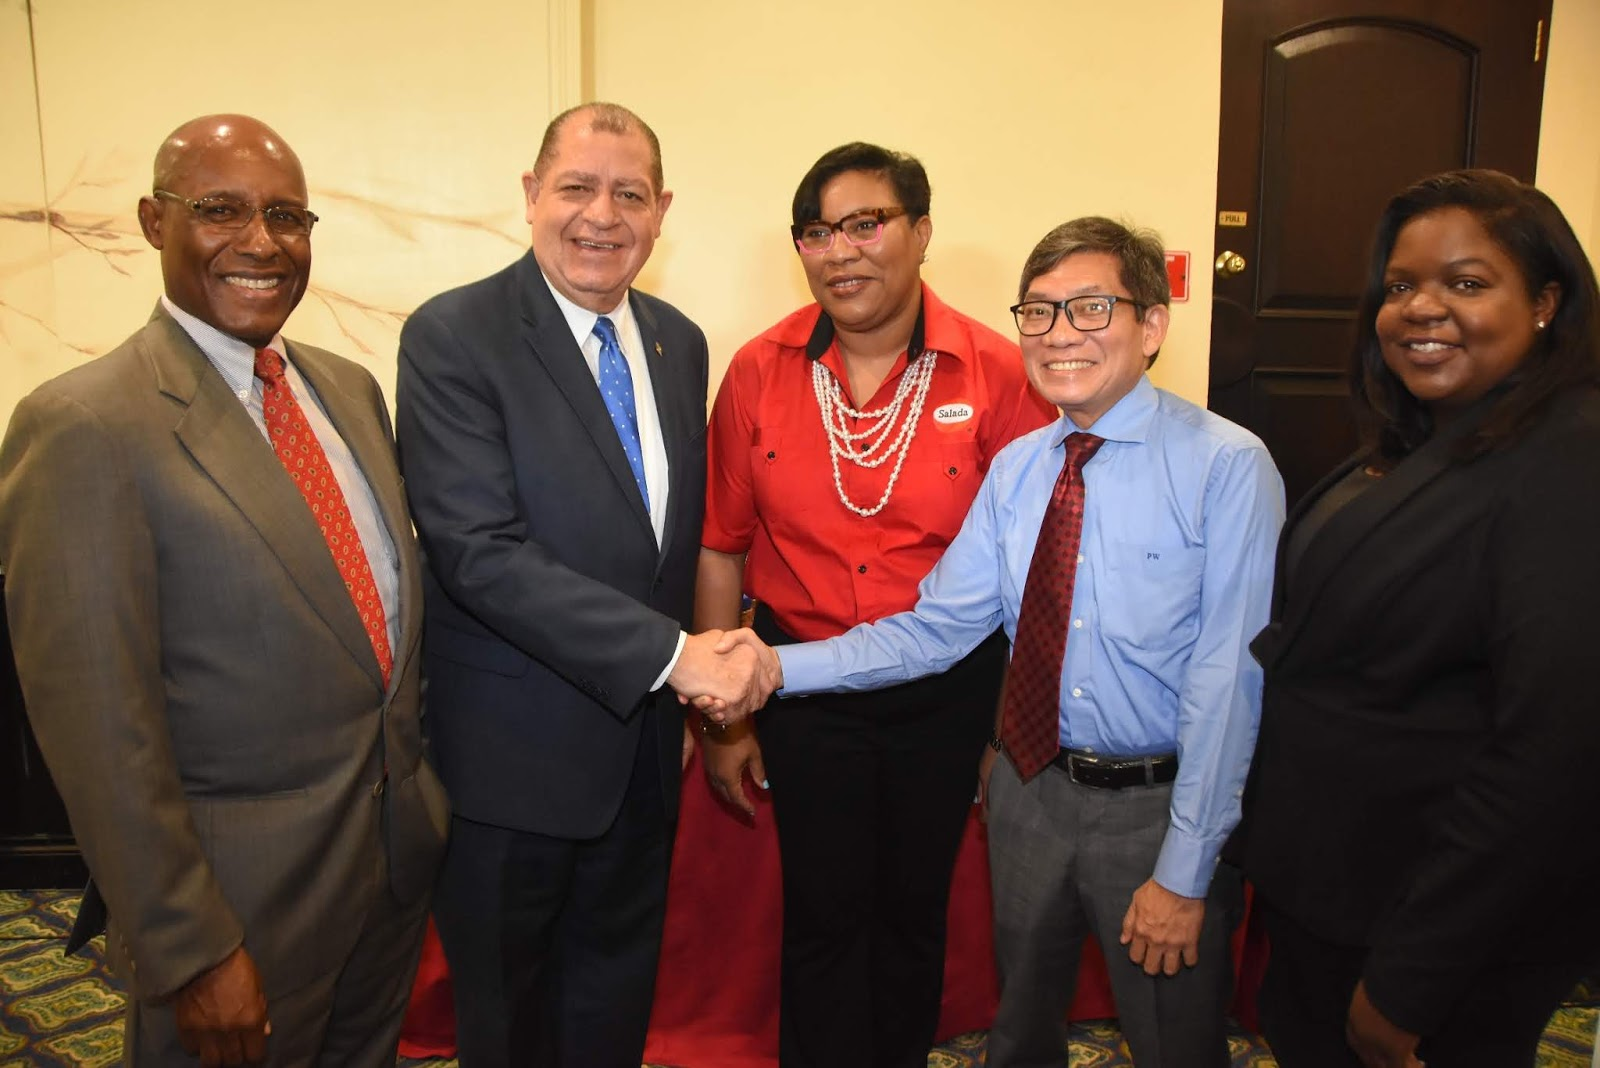 The Hon. Audley Shaw (second left), Minister of Industry, Commerce, Agriculture and Fisheries congratulates the Salada team on their initiative to utilize $100M to purchase 25,000 boxes of coffee cherries directly from farmers over a three-month period as noted at the press briefing held on Monday November 19, 2018, at the Courtleigh Hotel. Sharing in the moment are (from left) Senator the Hon. Aubyn Hill, Permanent Secretary in the Ministry of Industry, Commerce, Agriculture and Fisheries; Dianna Blake-Bennett , General Manager of Salada Foods Jamaica; Patrick Williams, Chairman of Salada Foods Jamaica; and Kathryn Lewis, Board Director at Salada Foods Jamaica.